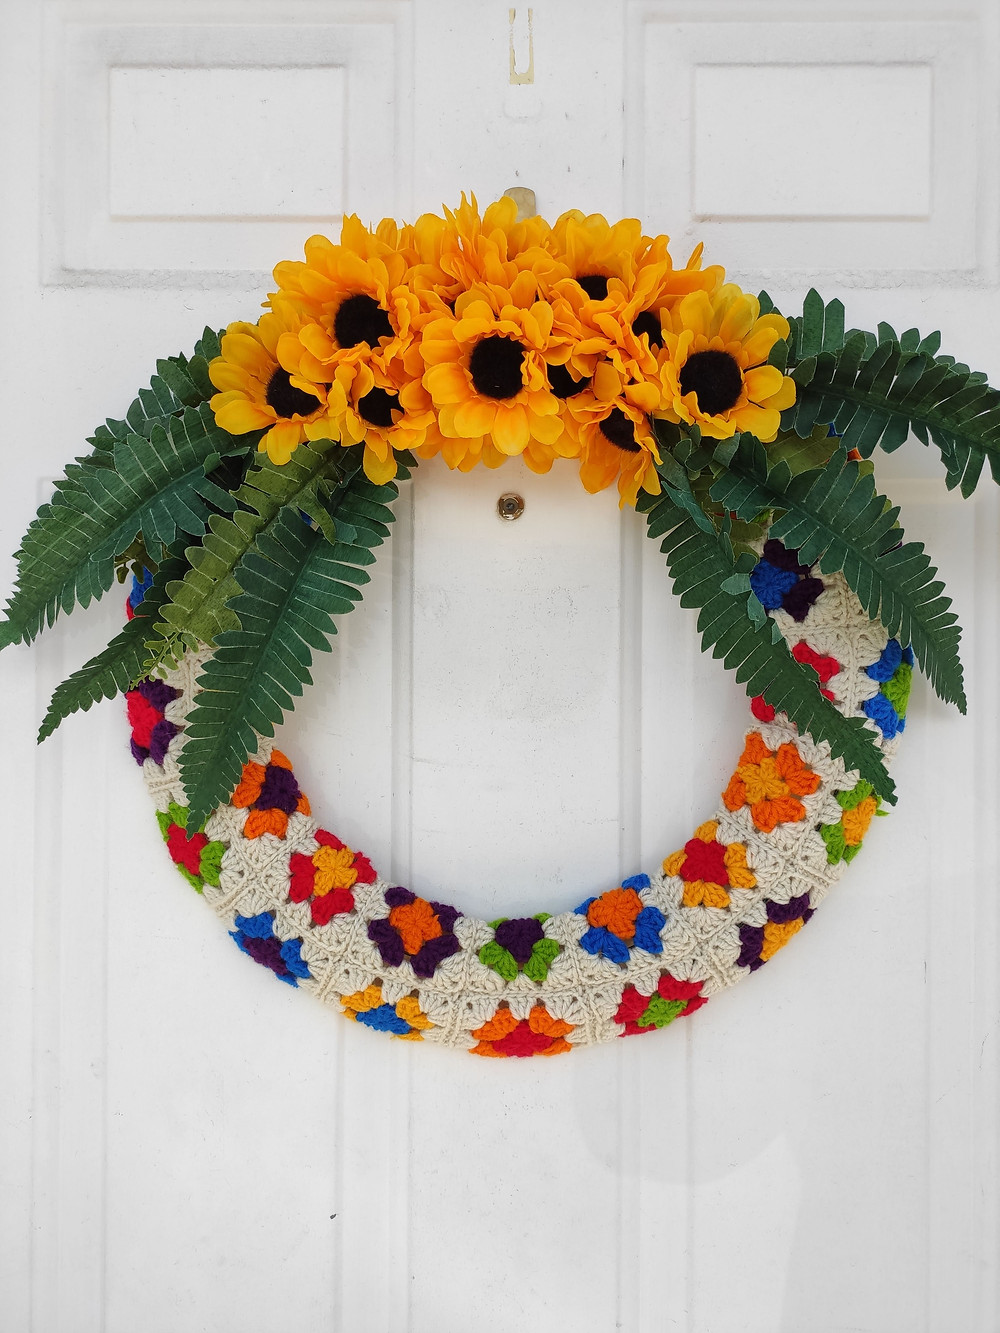 a colorful wreath with fake sunflowers and fake fern leaves glued on the top of the wreath. The rest of the wreath is covered in a colorful granny square fabric.